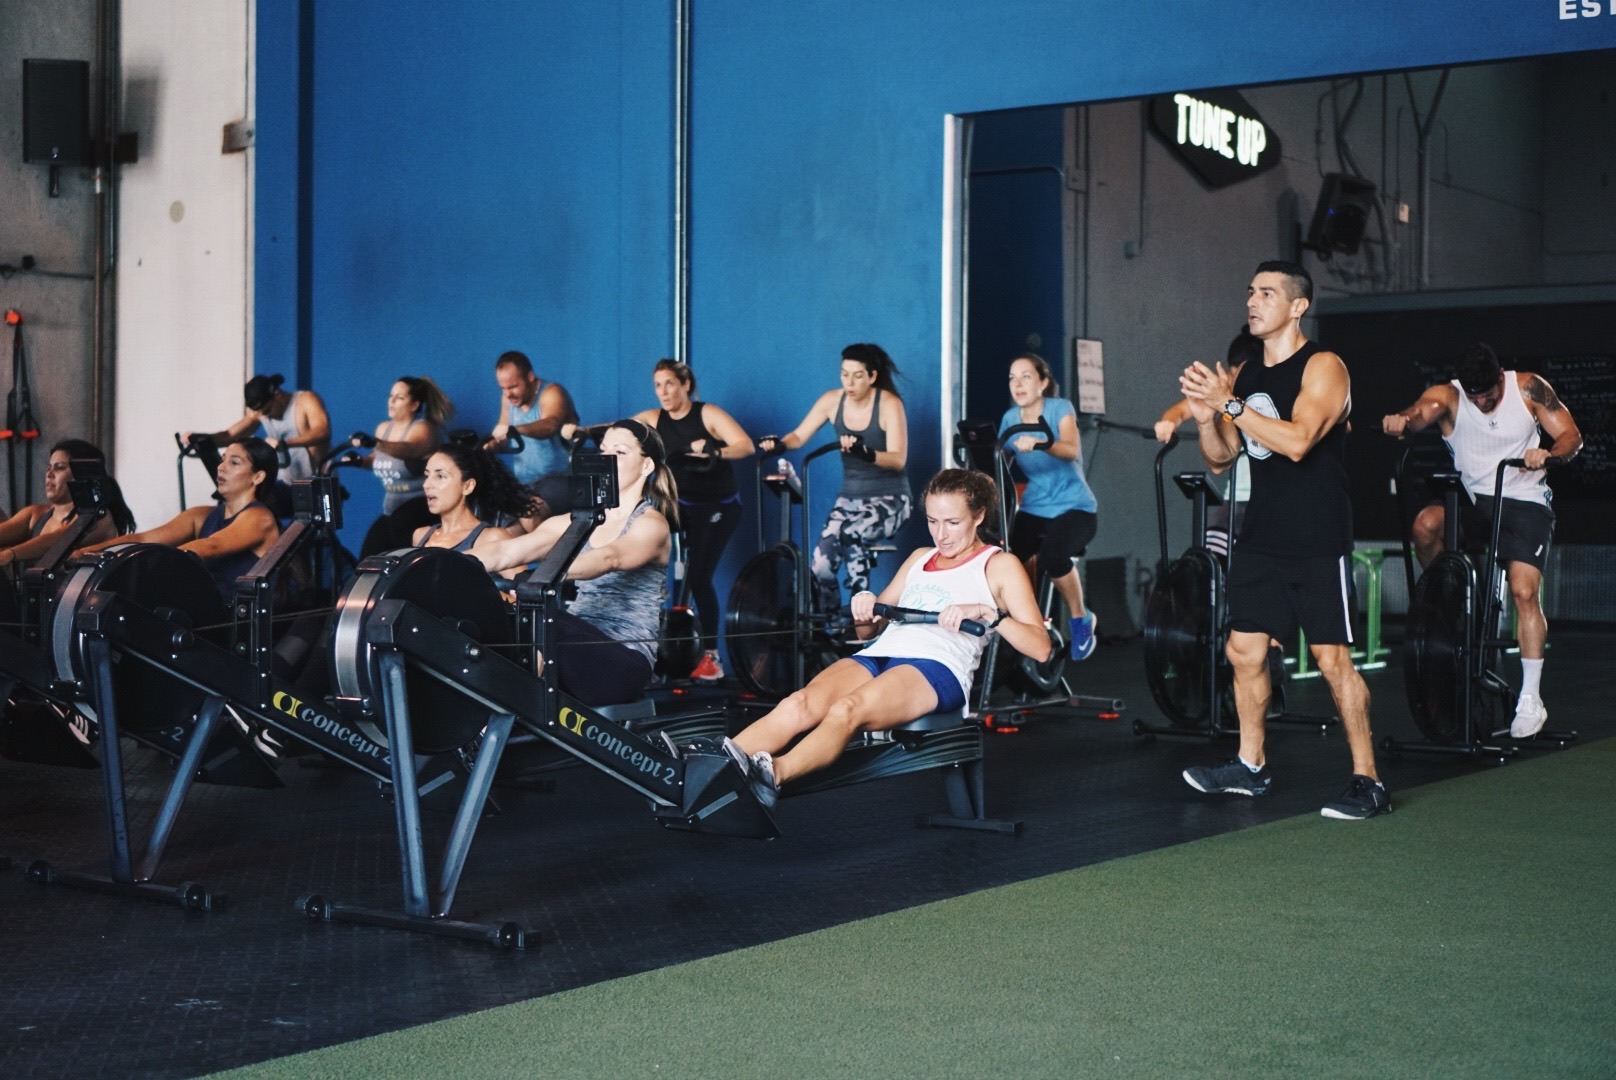 The Racetrack - OUR NEWEST CLASS! This class is a fun CARDIO journey through 9 Miles (stations) testing out all your strengths. Expect to see TRX, assault bikes, ropes, bands, sleds, ski's, rowers, bosu's, kettlebells and so much more. Have fun and get a great workout!